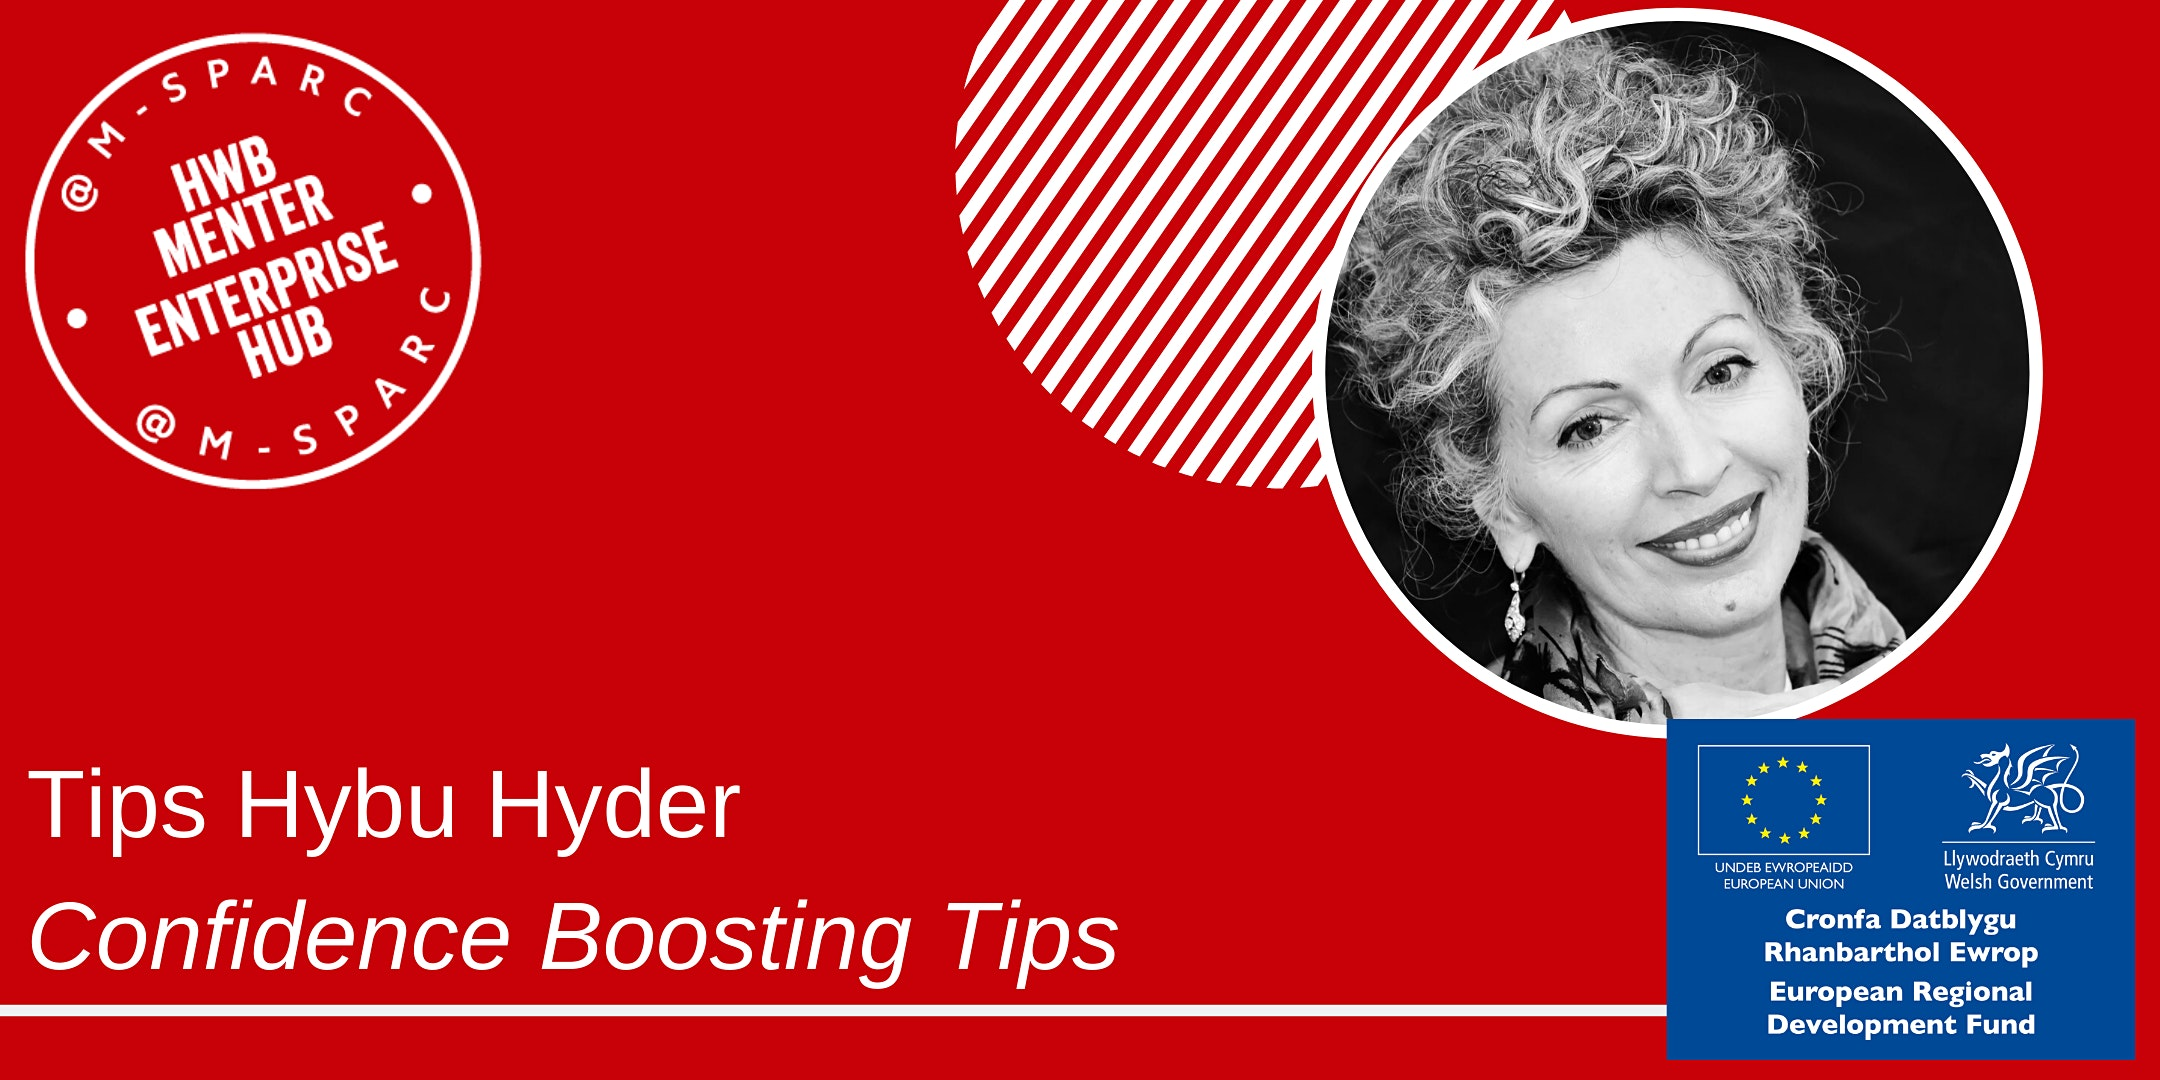 Covid-19: Tips Hybu Hyder / Confidence Boosting Tips